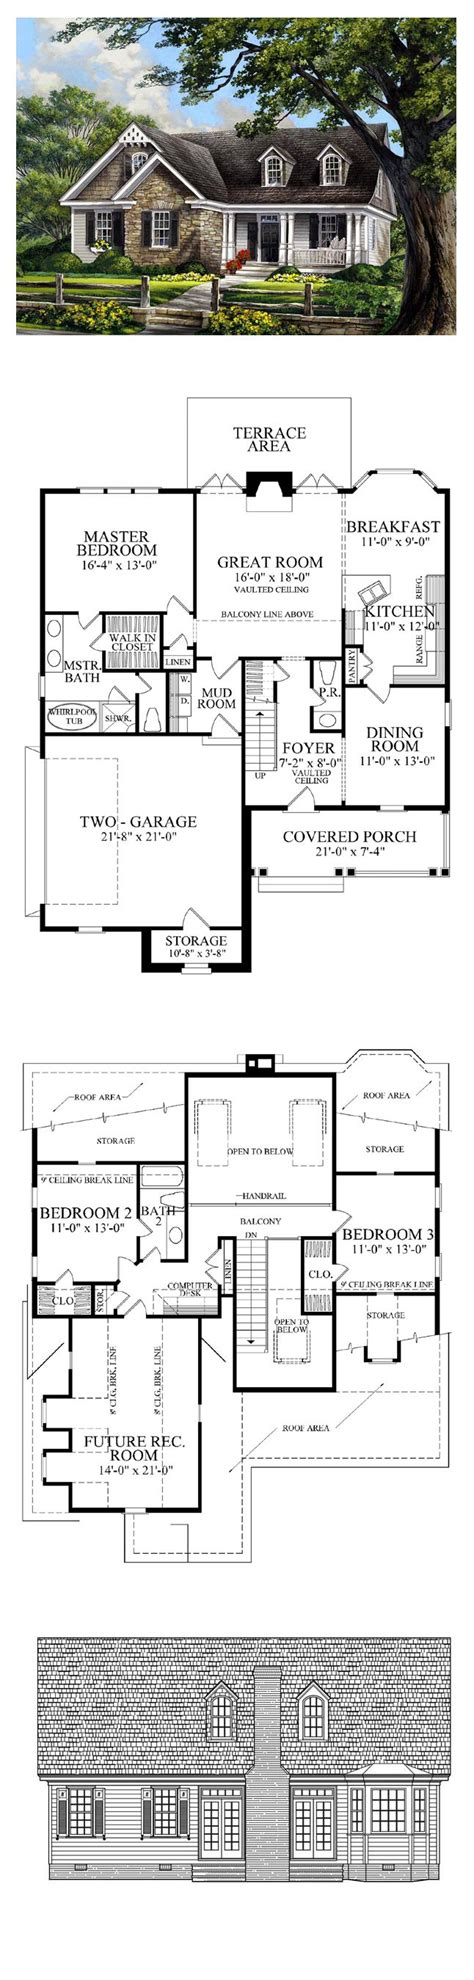 3 bedroom country house plans country ranch house plans floor and 3 bedroom plan simple